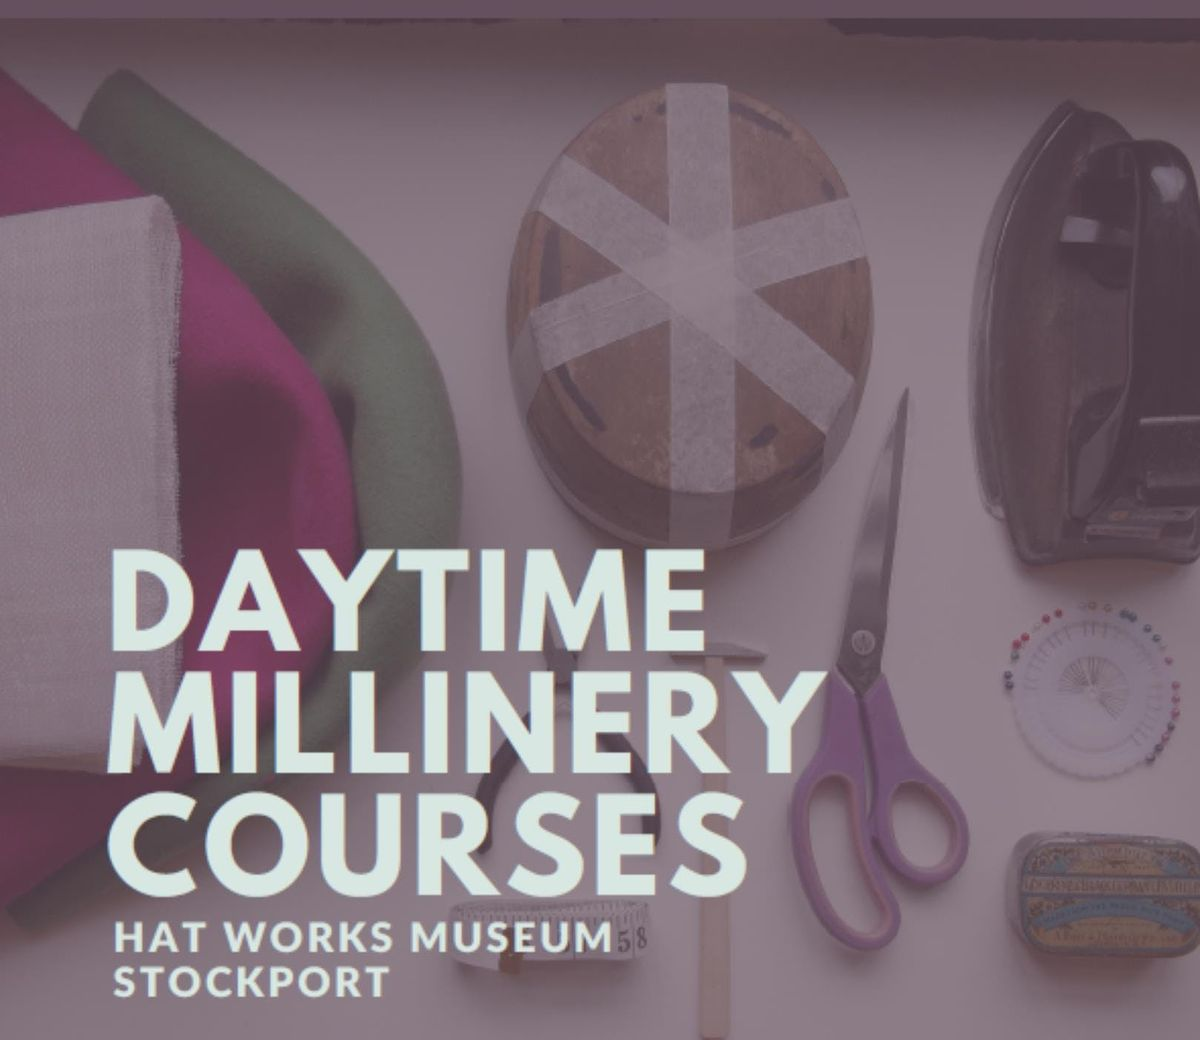 Daytime Millinery Course: Fabric Covered Hats